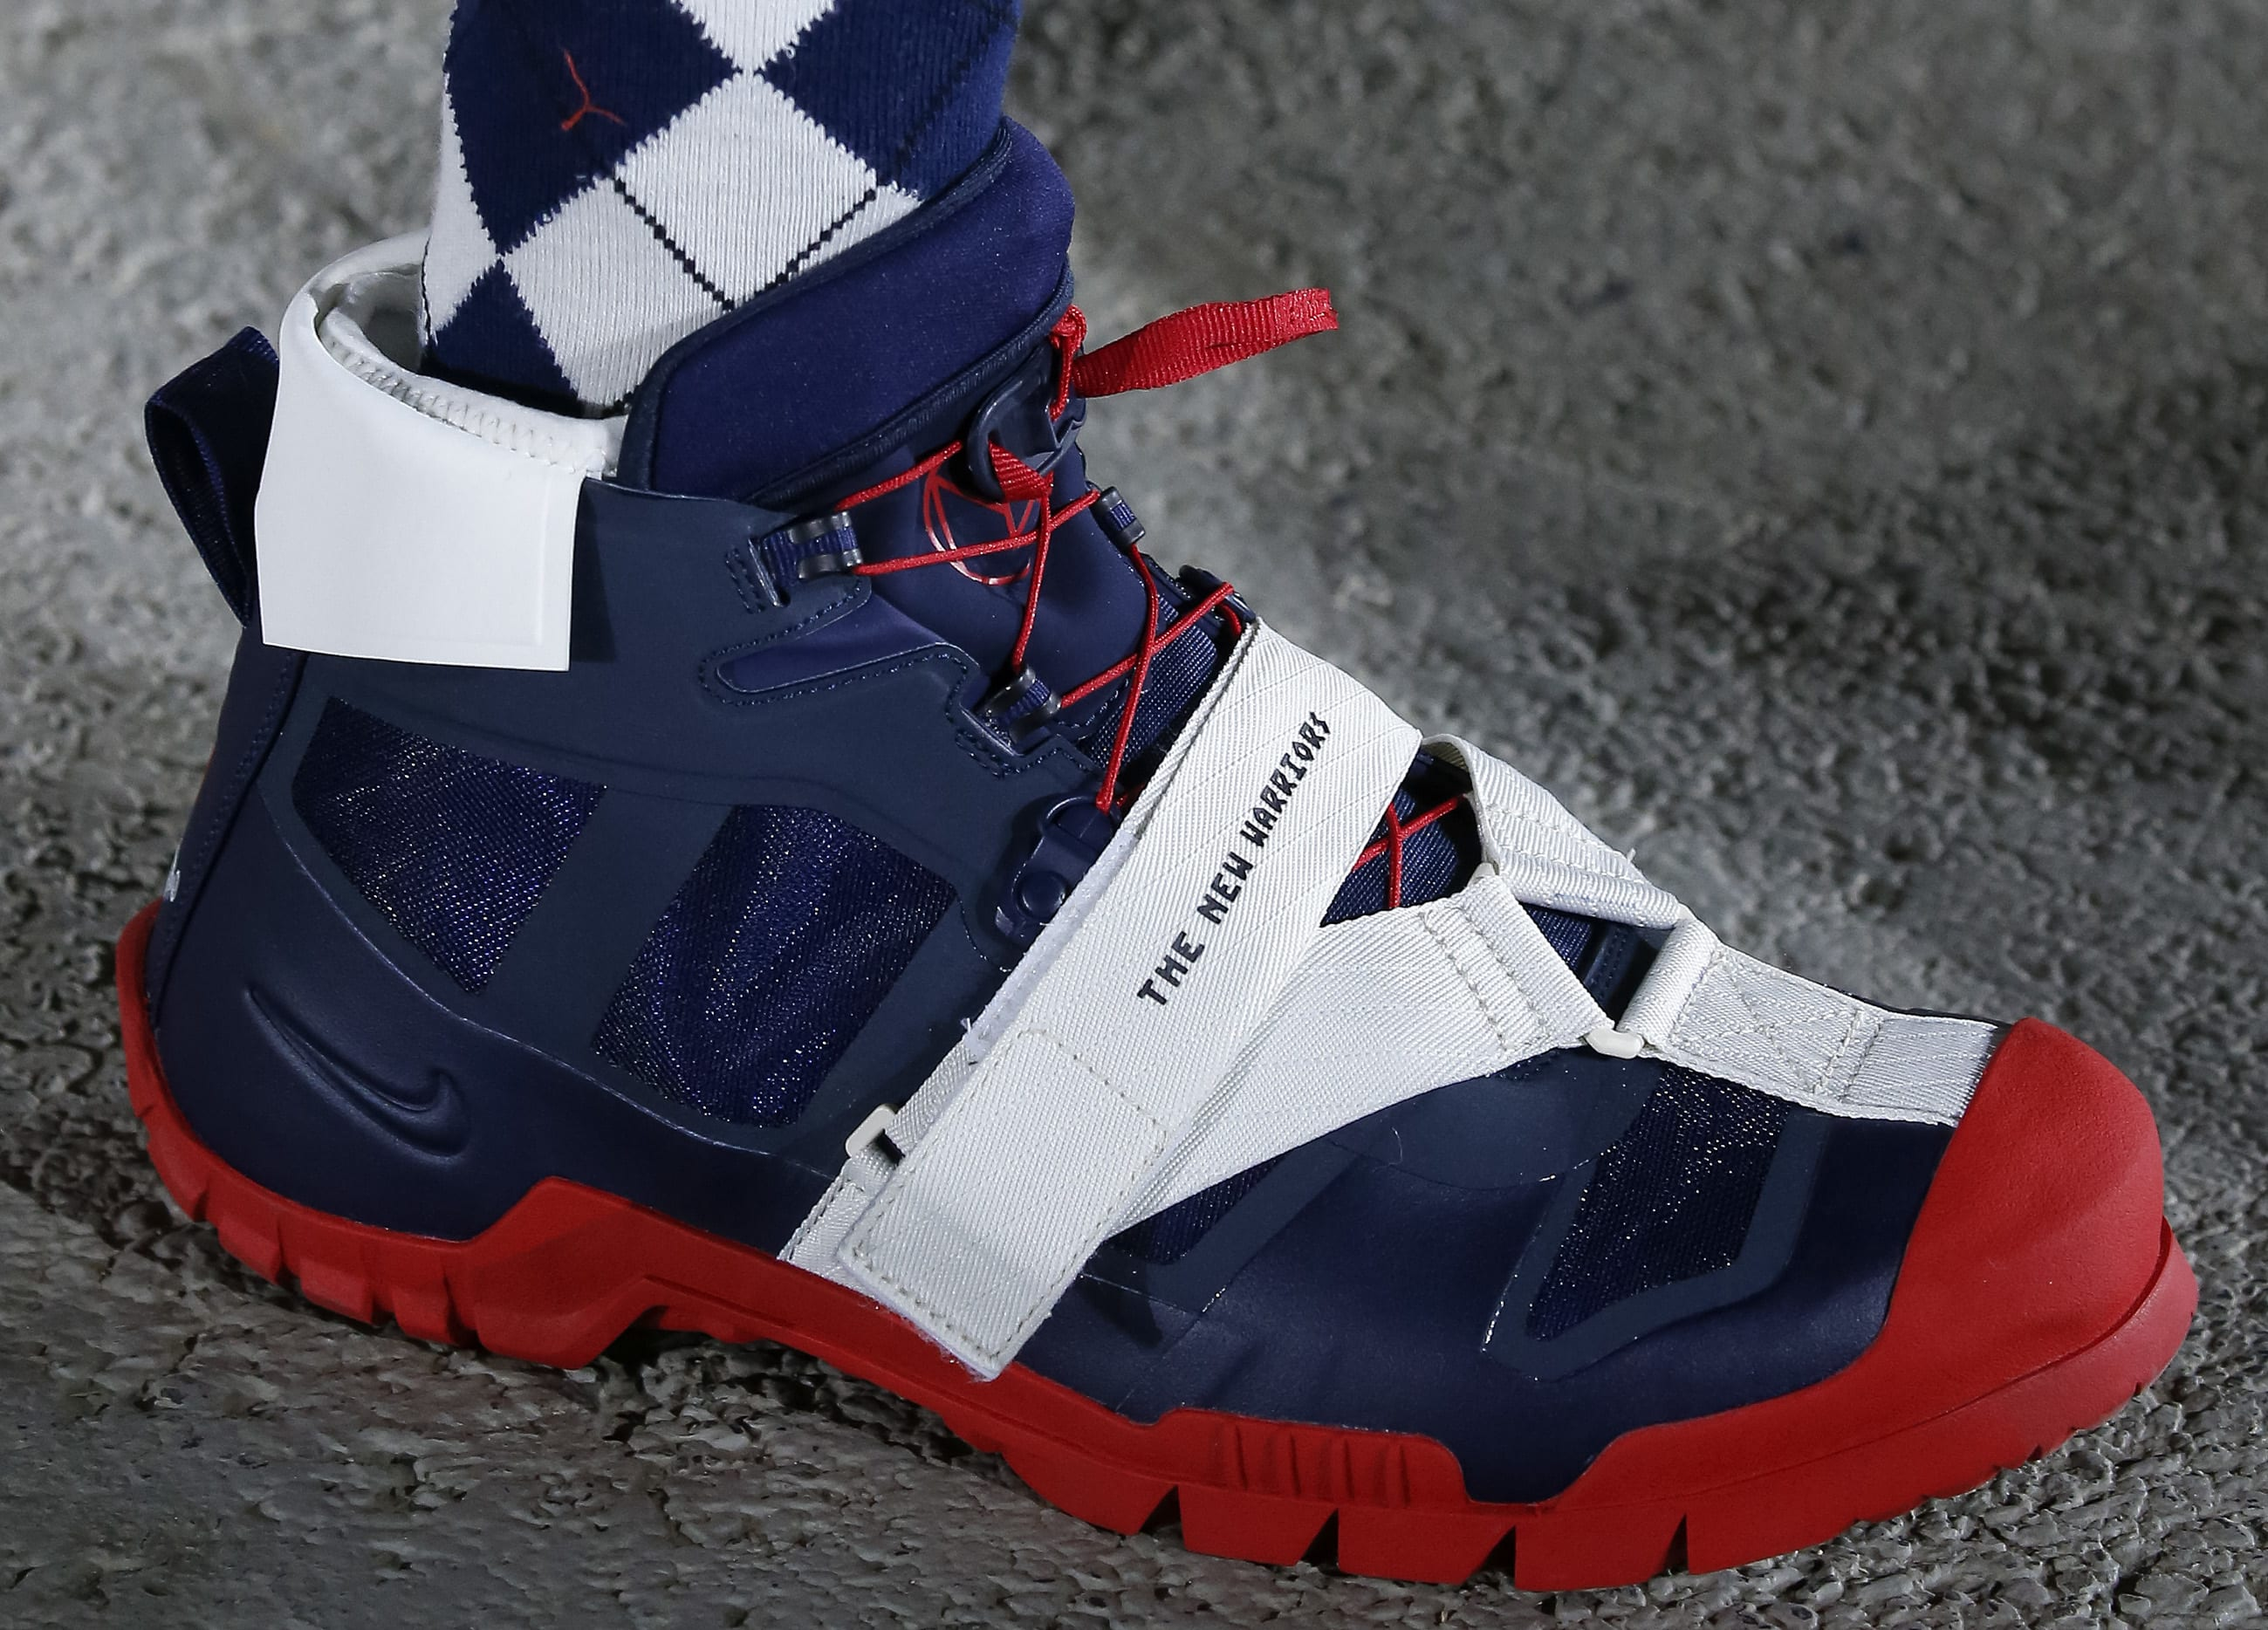 Undercover x Nike Paris Fashion Week Navy/Red High-Top